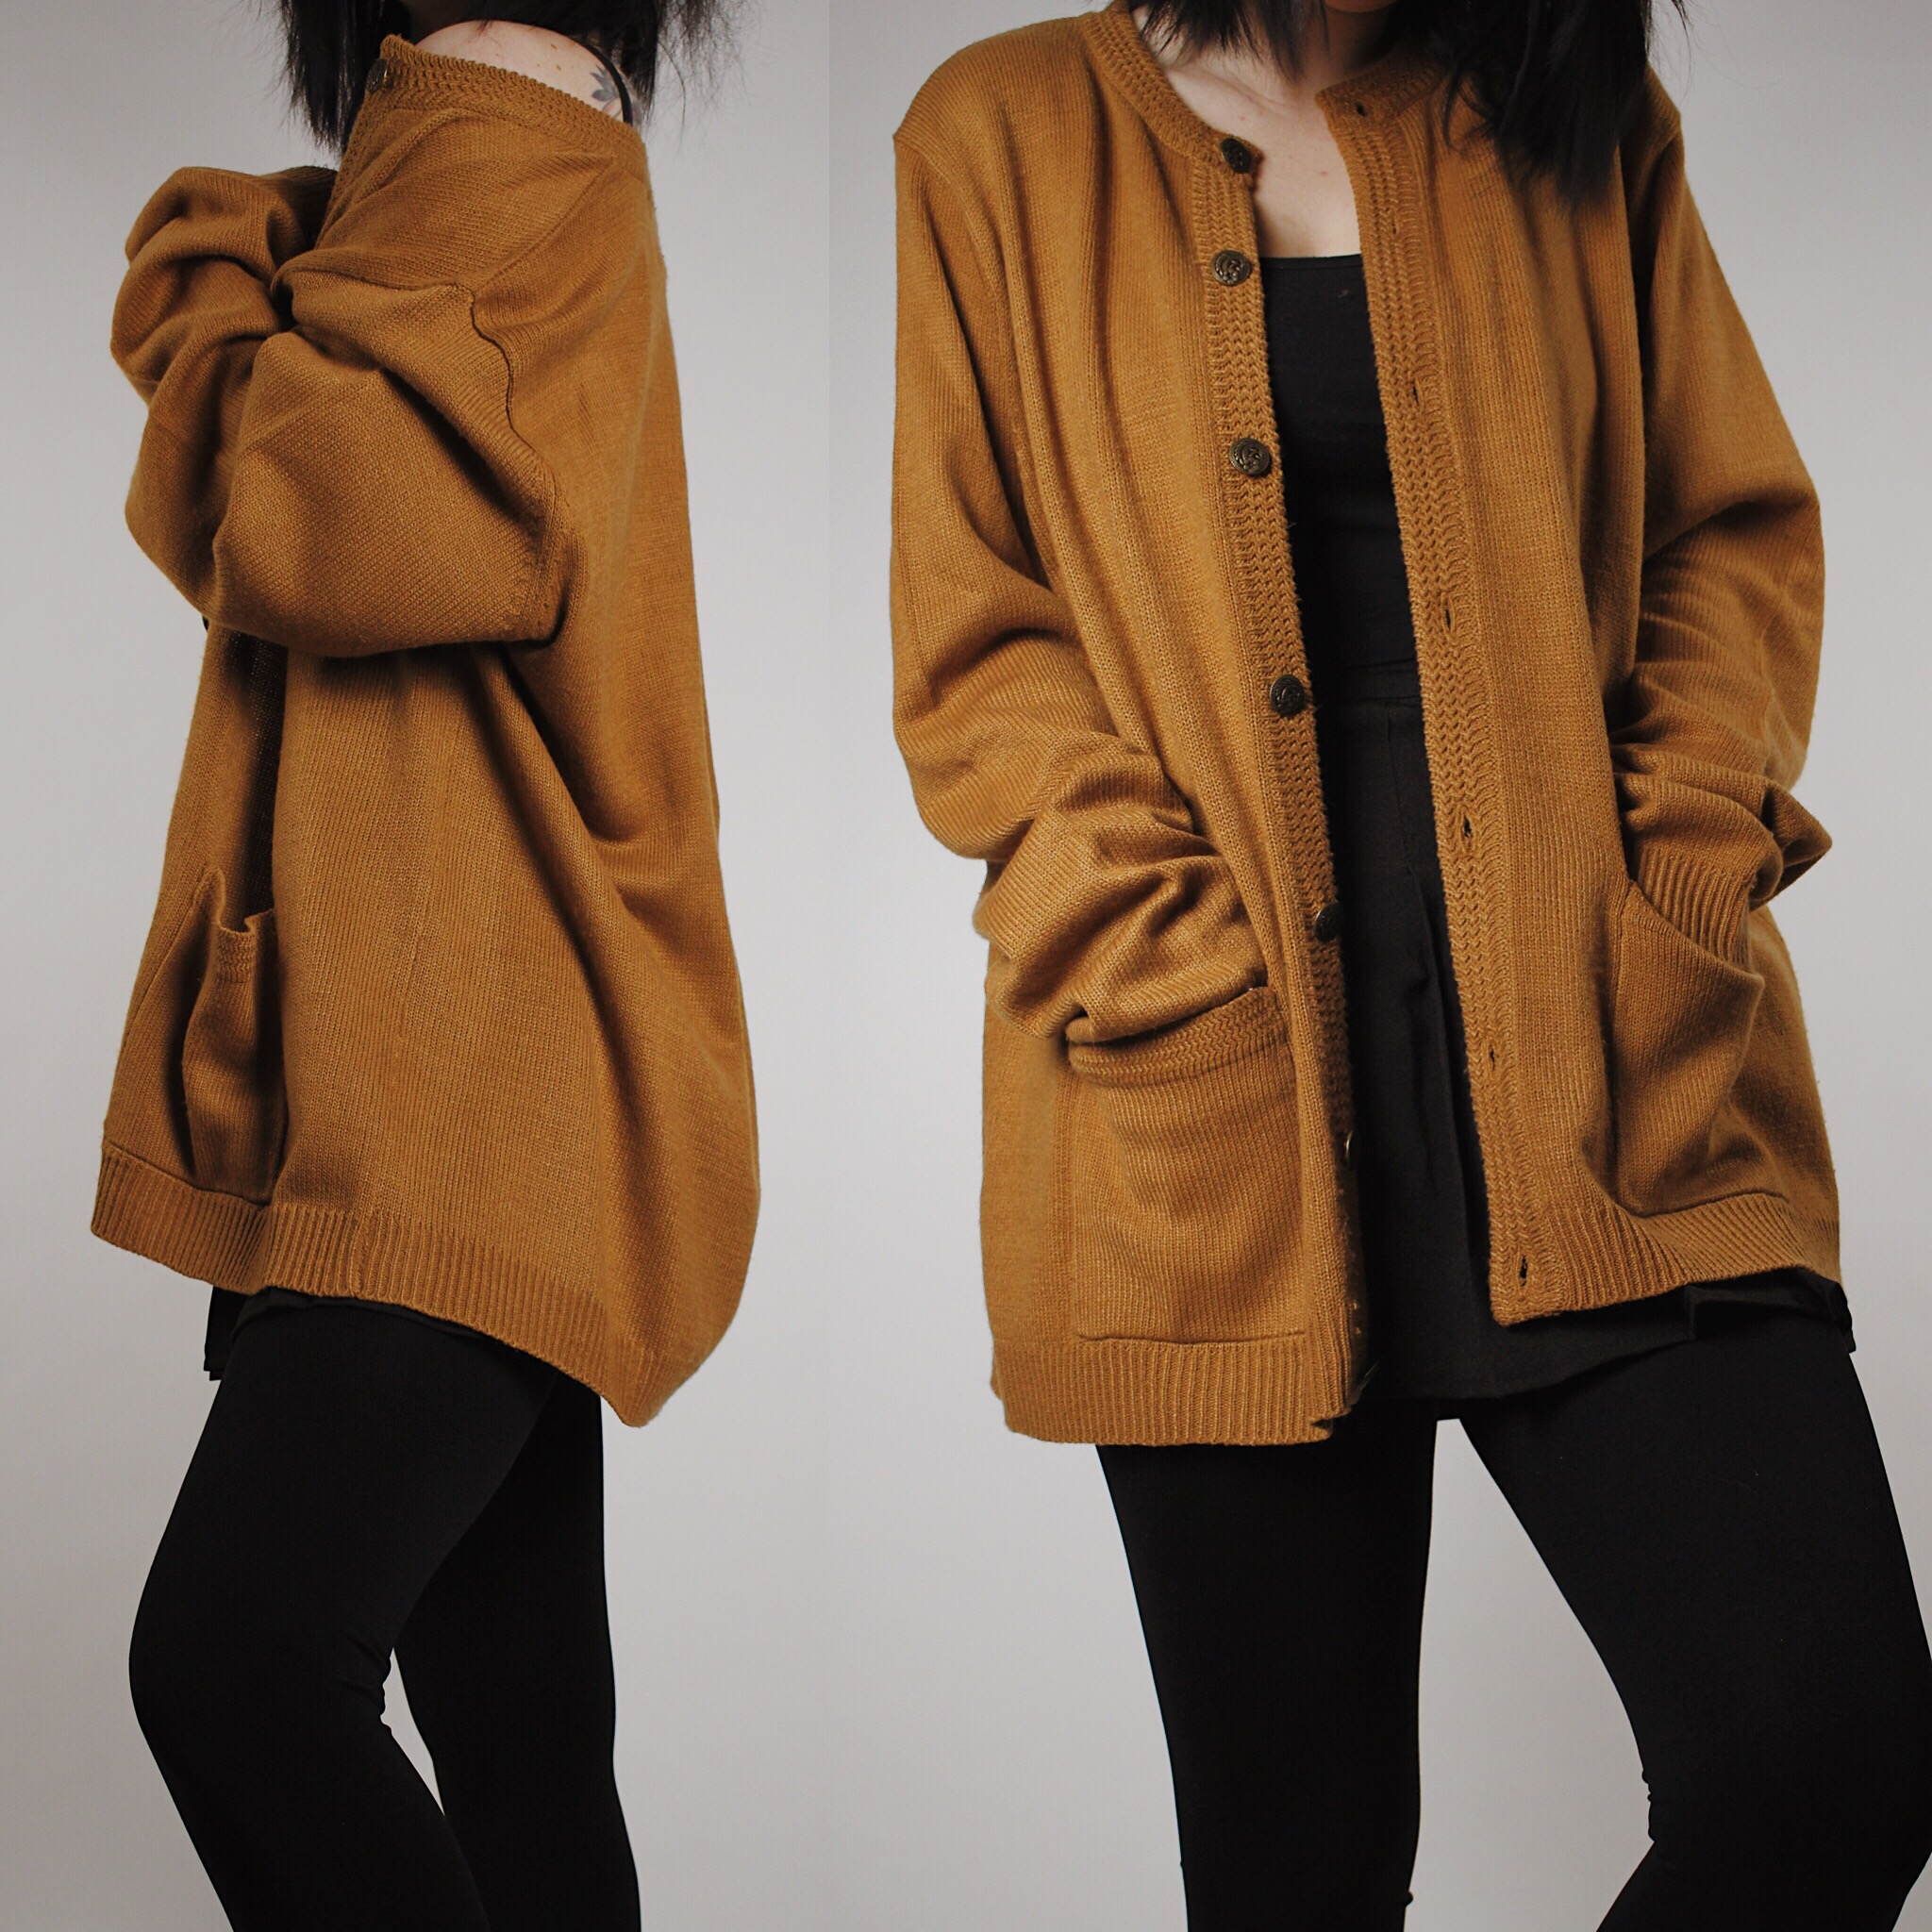 dd89922699c RESERVED FOR KYLIE - Vintage 90s Mustard Yellow Cardigan from Last Rites